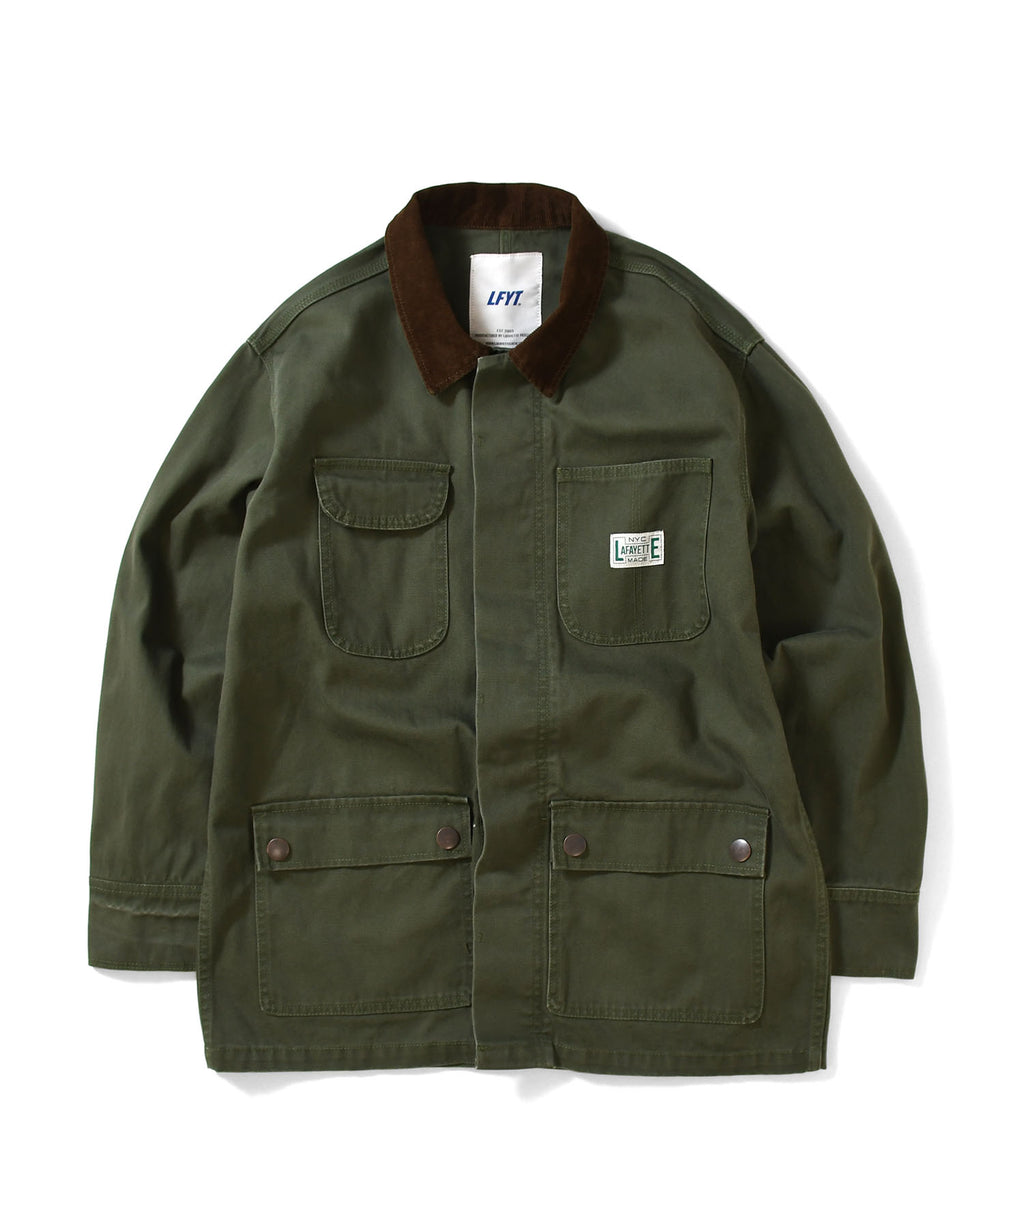 WORKERS DUCK COVERALL JACKET LA201005 GREEN